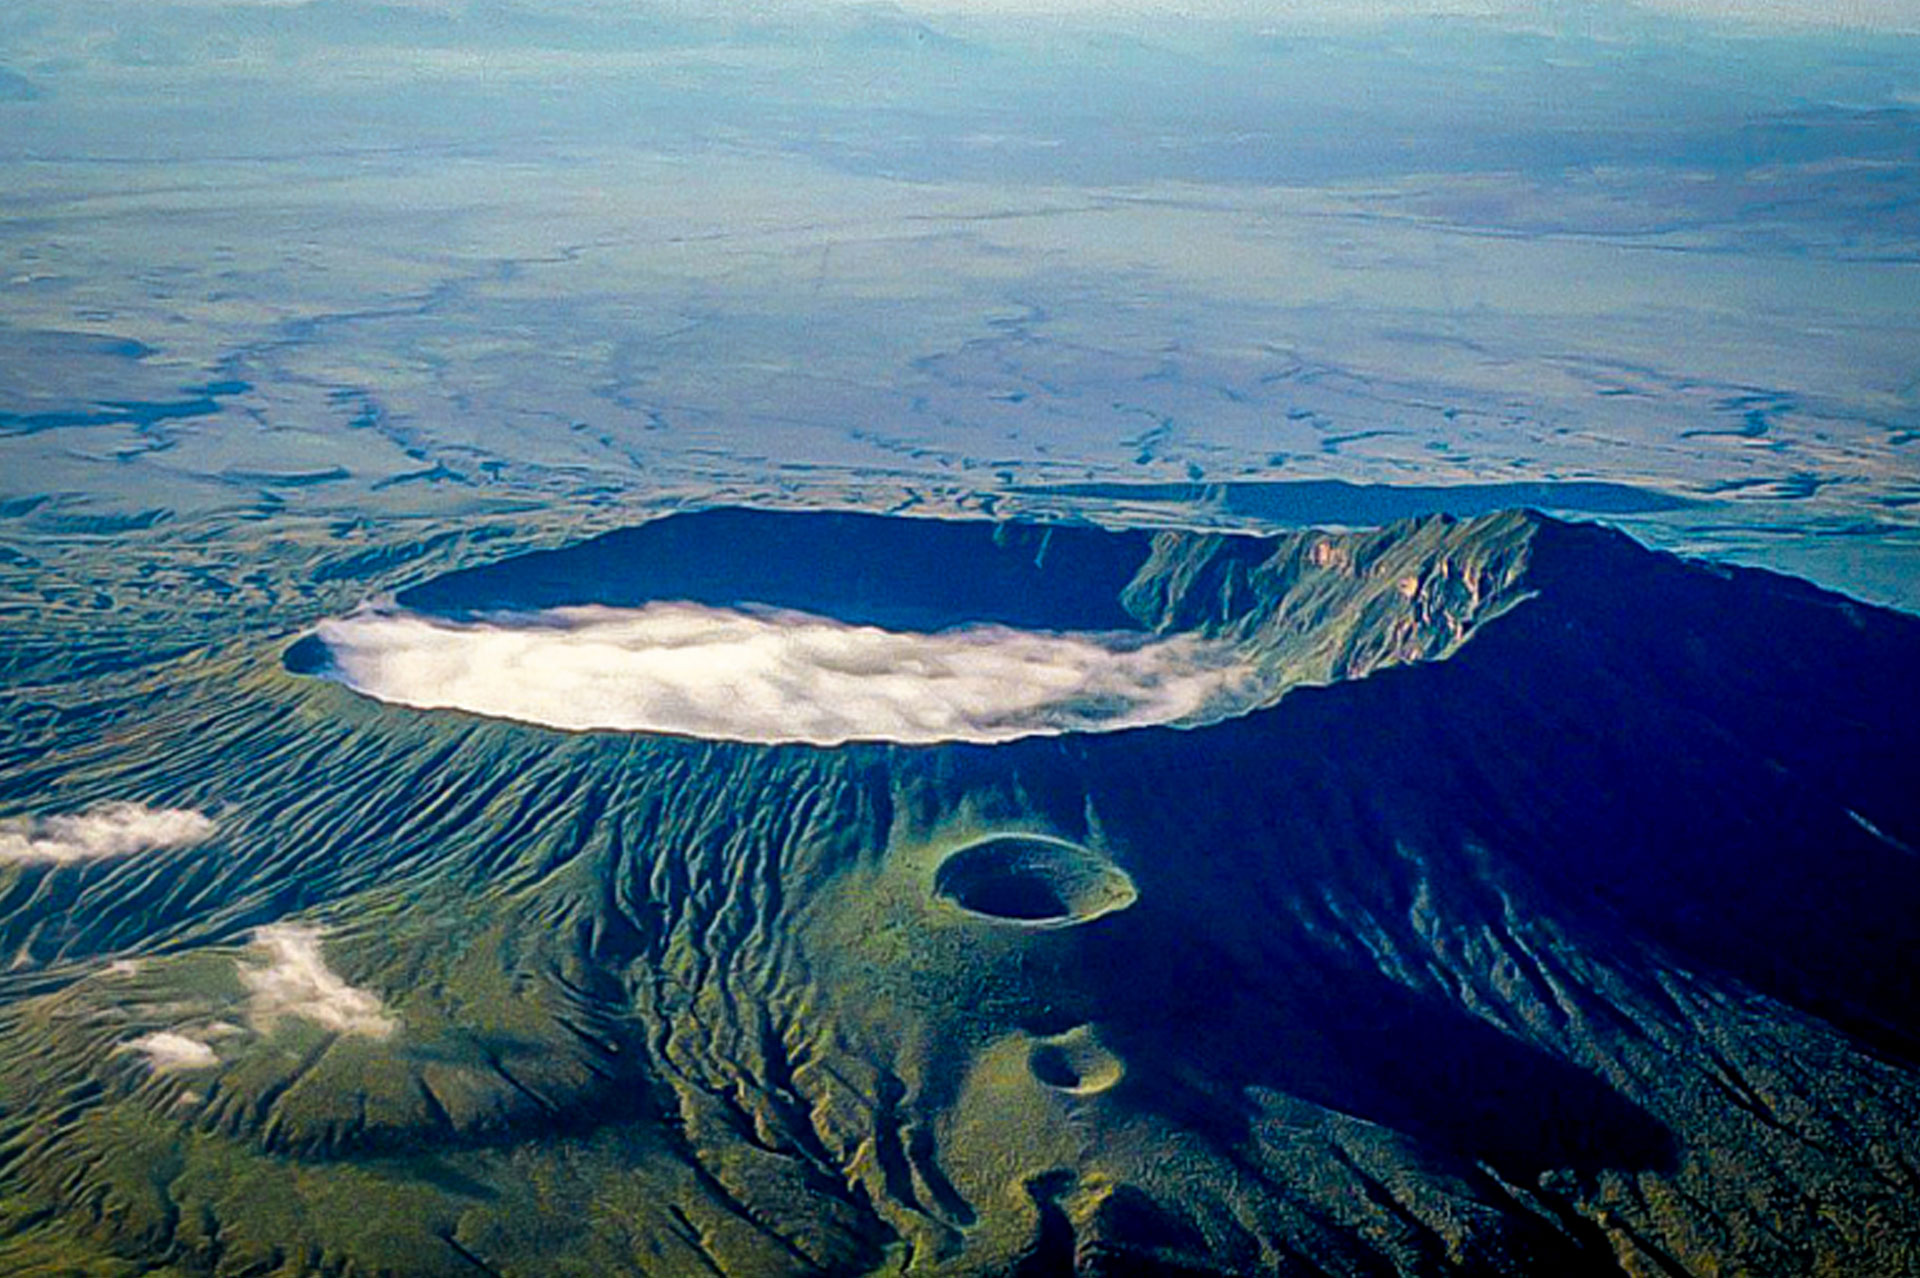 Diani_travel_center_National_Parks_in_Kenya_Mount_Longonot_National_park_image_1jpg